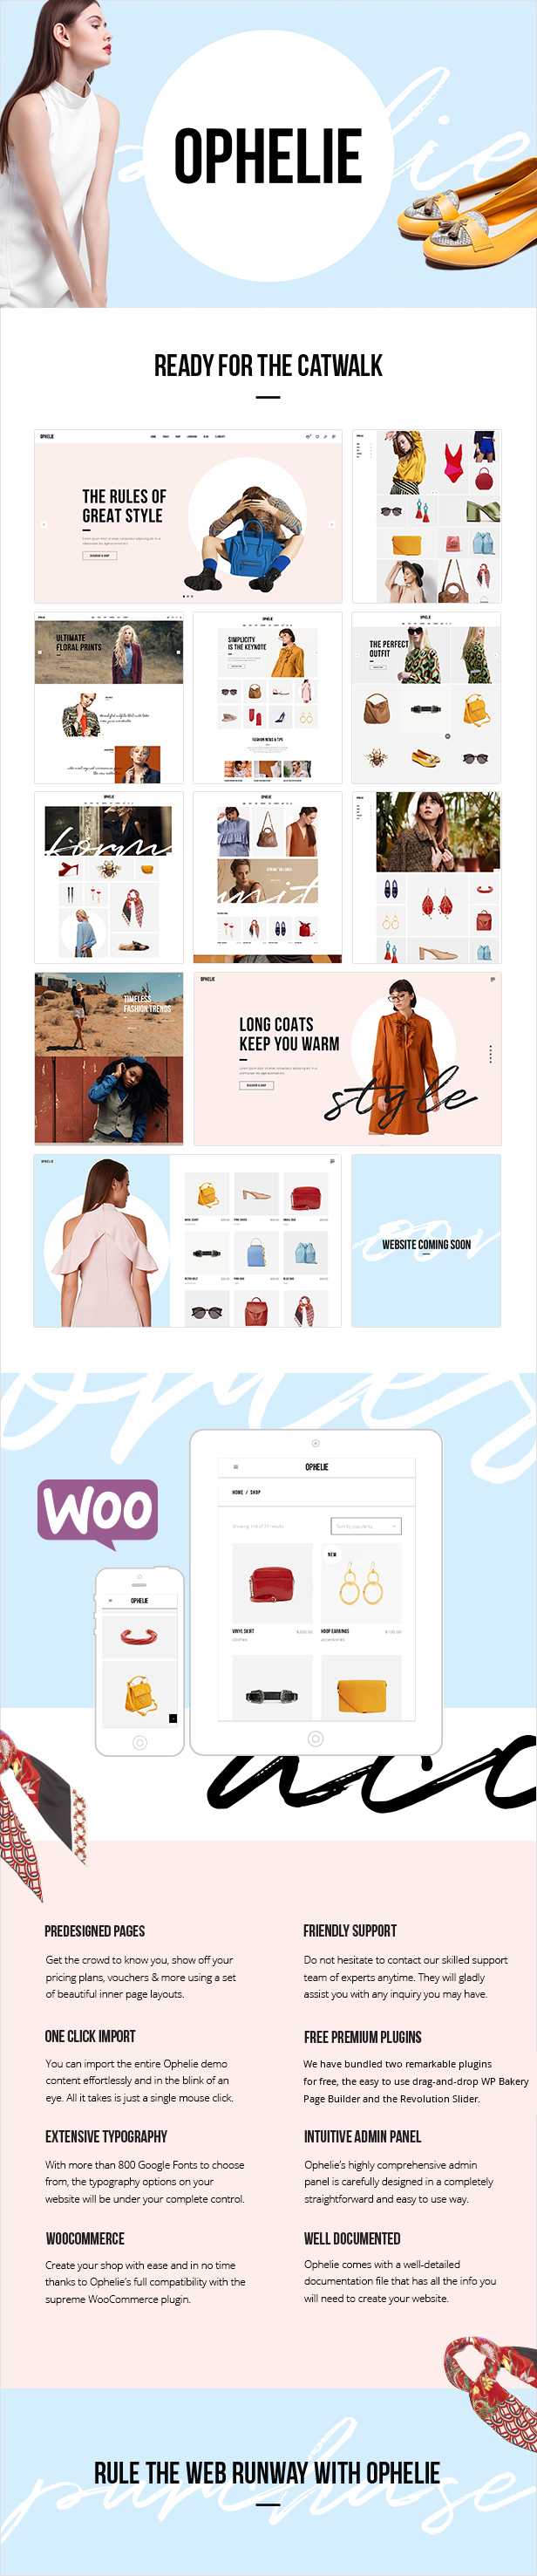 Ophelie - WooCommerce Theme for Fashion Shops, Stores and Brands - 1 ophelie - fashion shop theme nulled free download Ophelie – Fashion Shop Theme Nulled Free Download 01a